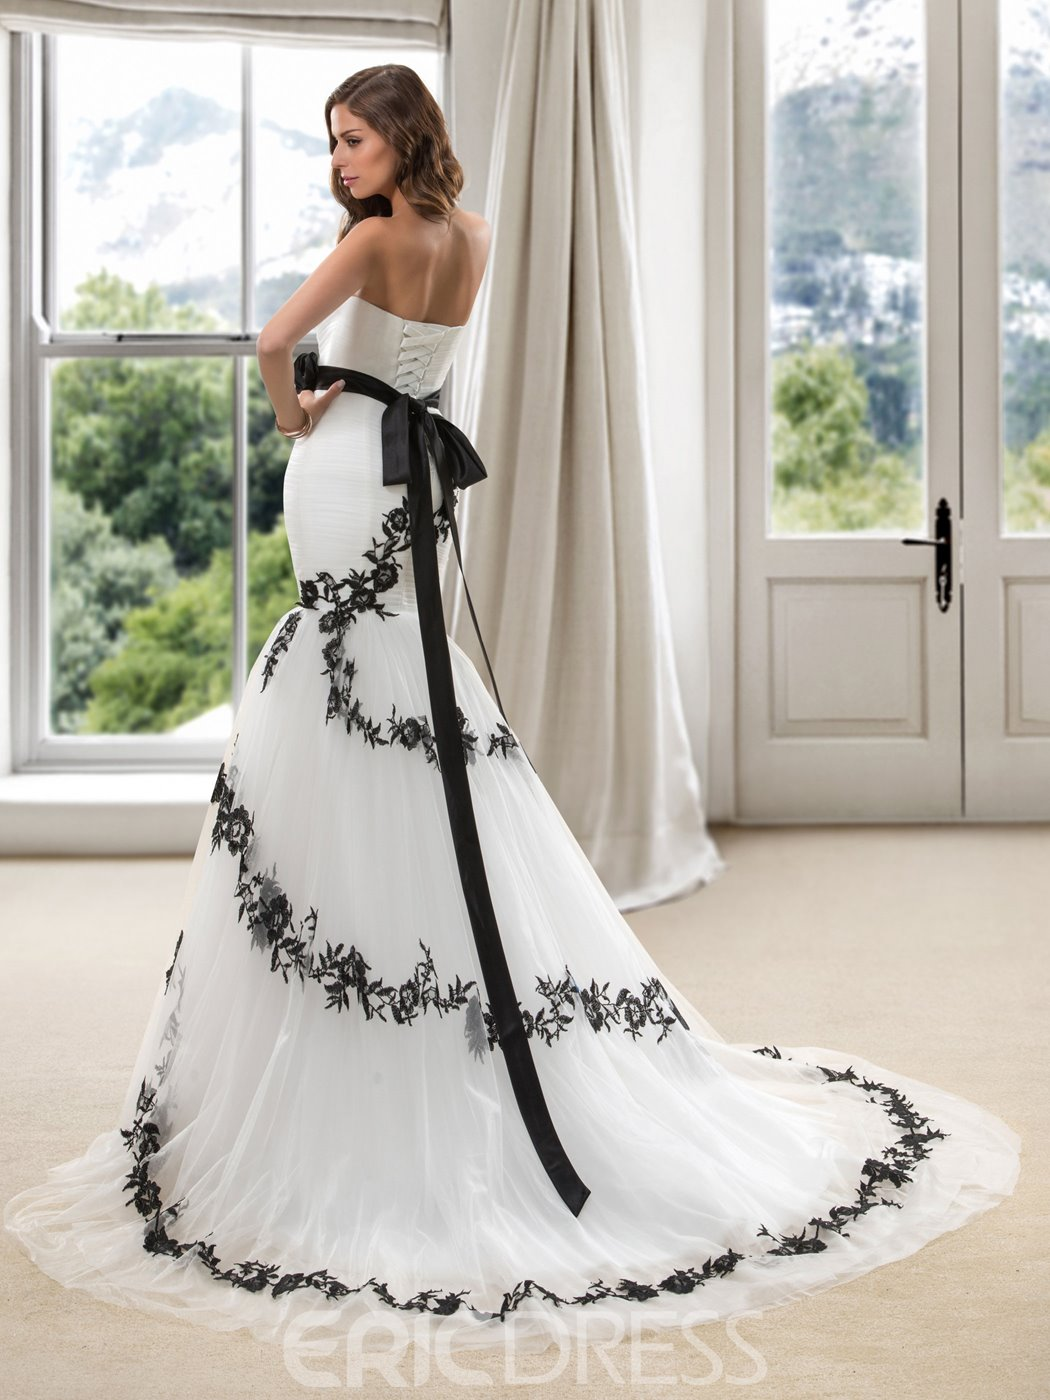 eeadf01a8745 ... Modern Strapless Embroidery Flowers Mermaid Court Train Wedding Dress  ...